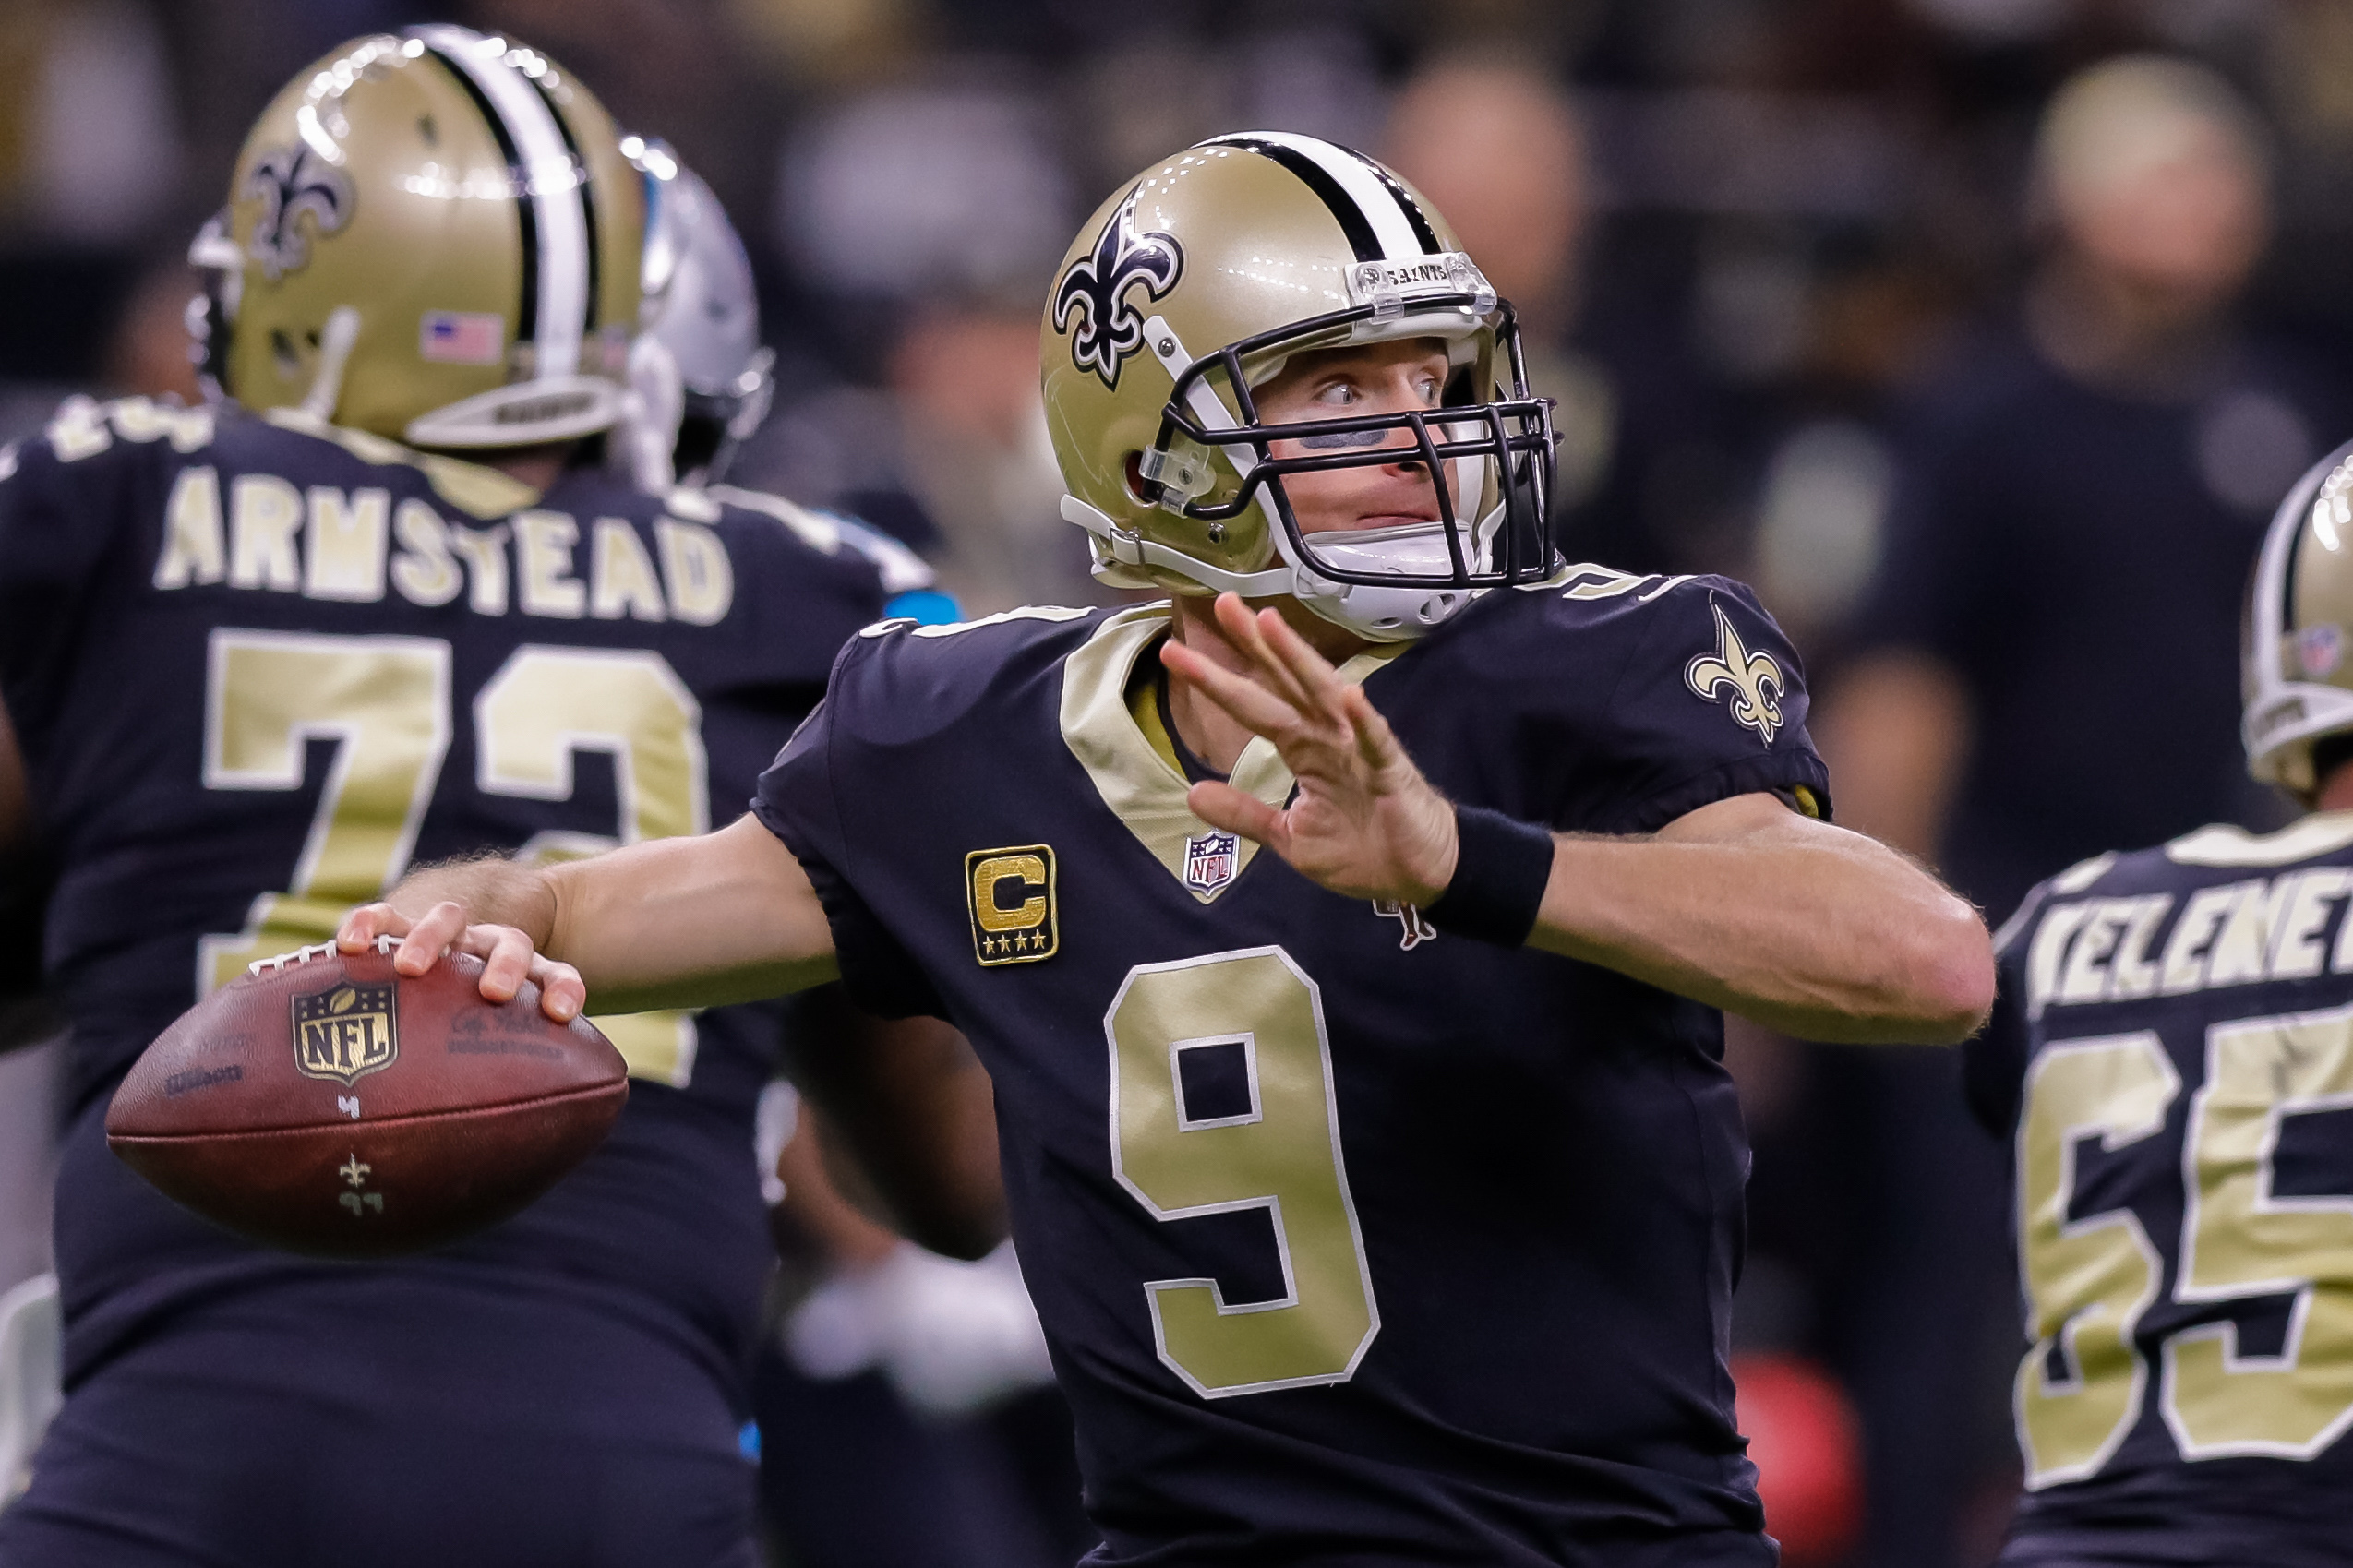 Jan 7, 2018; New Orleans, LA, USA; New Orleans Saints quarterback Drew Brees (9) drops back to pass against Carolina Panthers in the NFC Wild Card playoff football game at Mercedes-Benz Superdome. Mandatory Credit: Stephen Lew-USA TODAY Sports